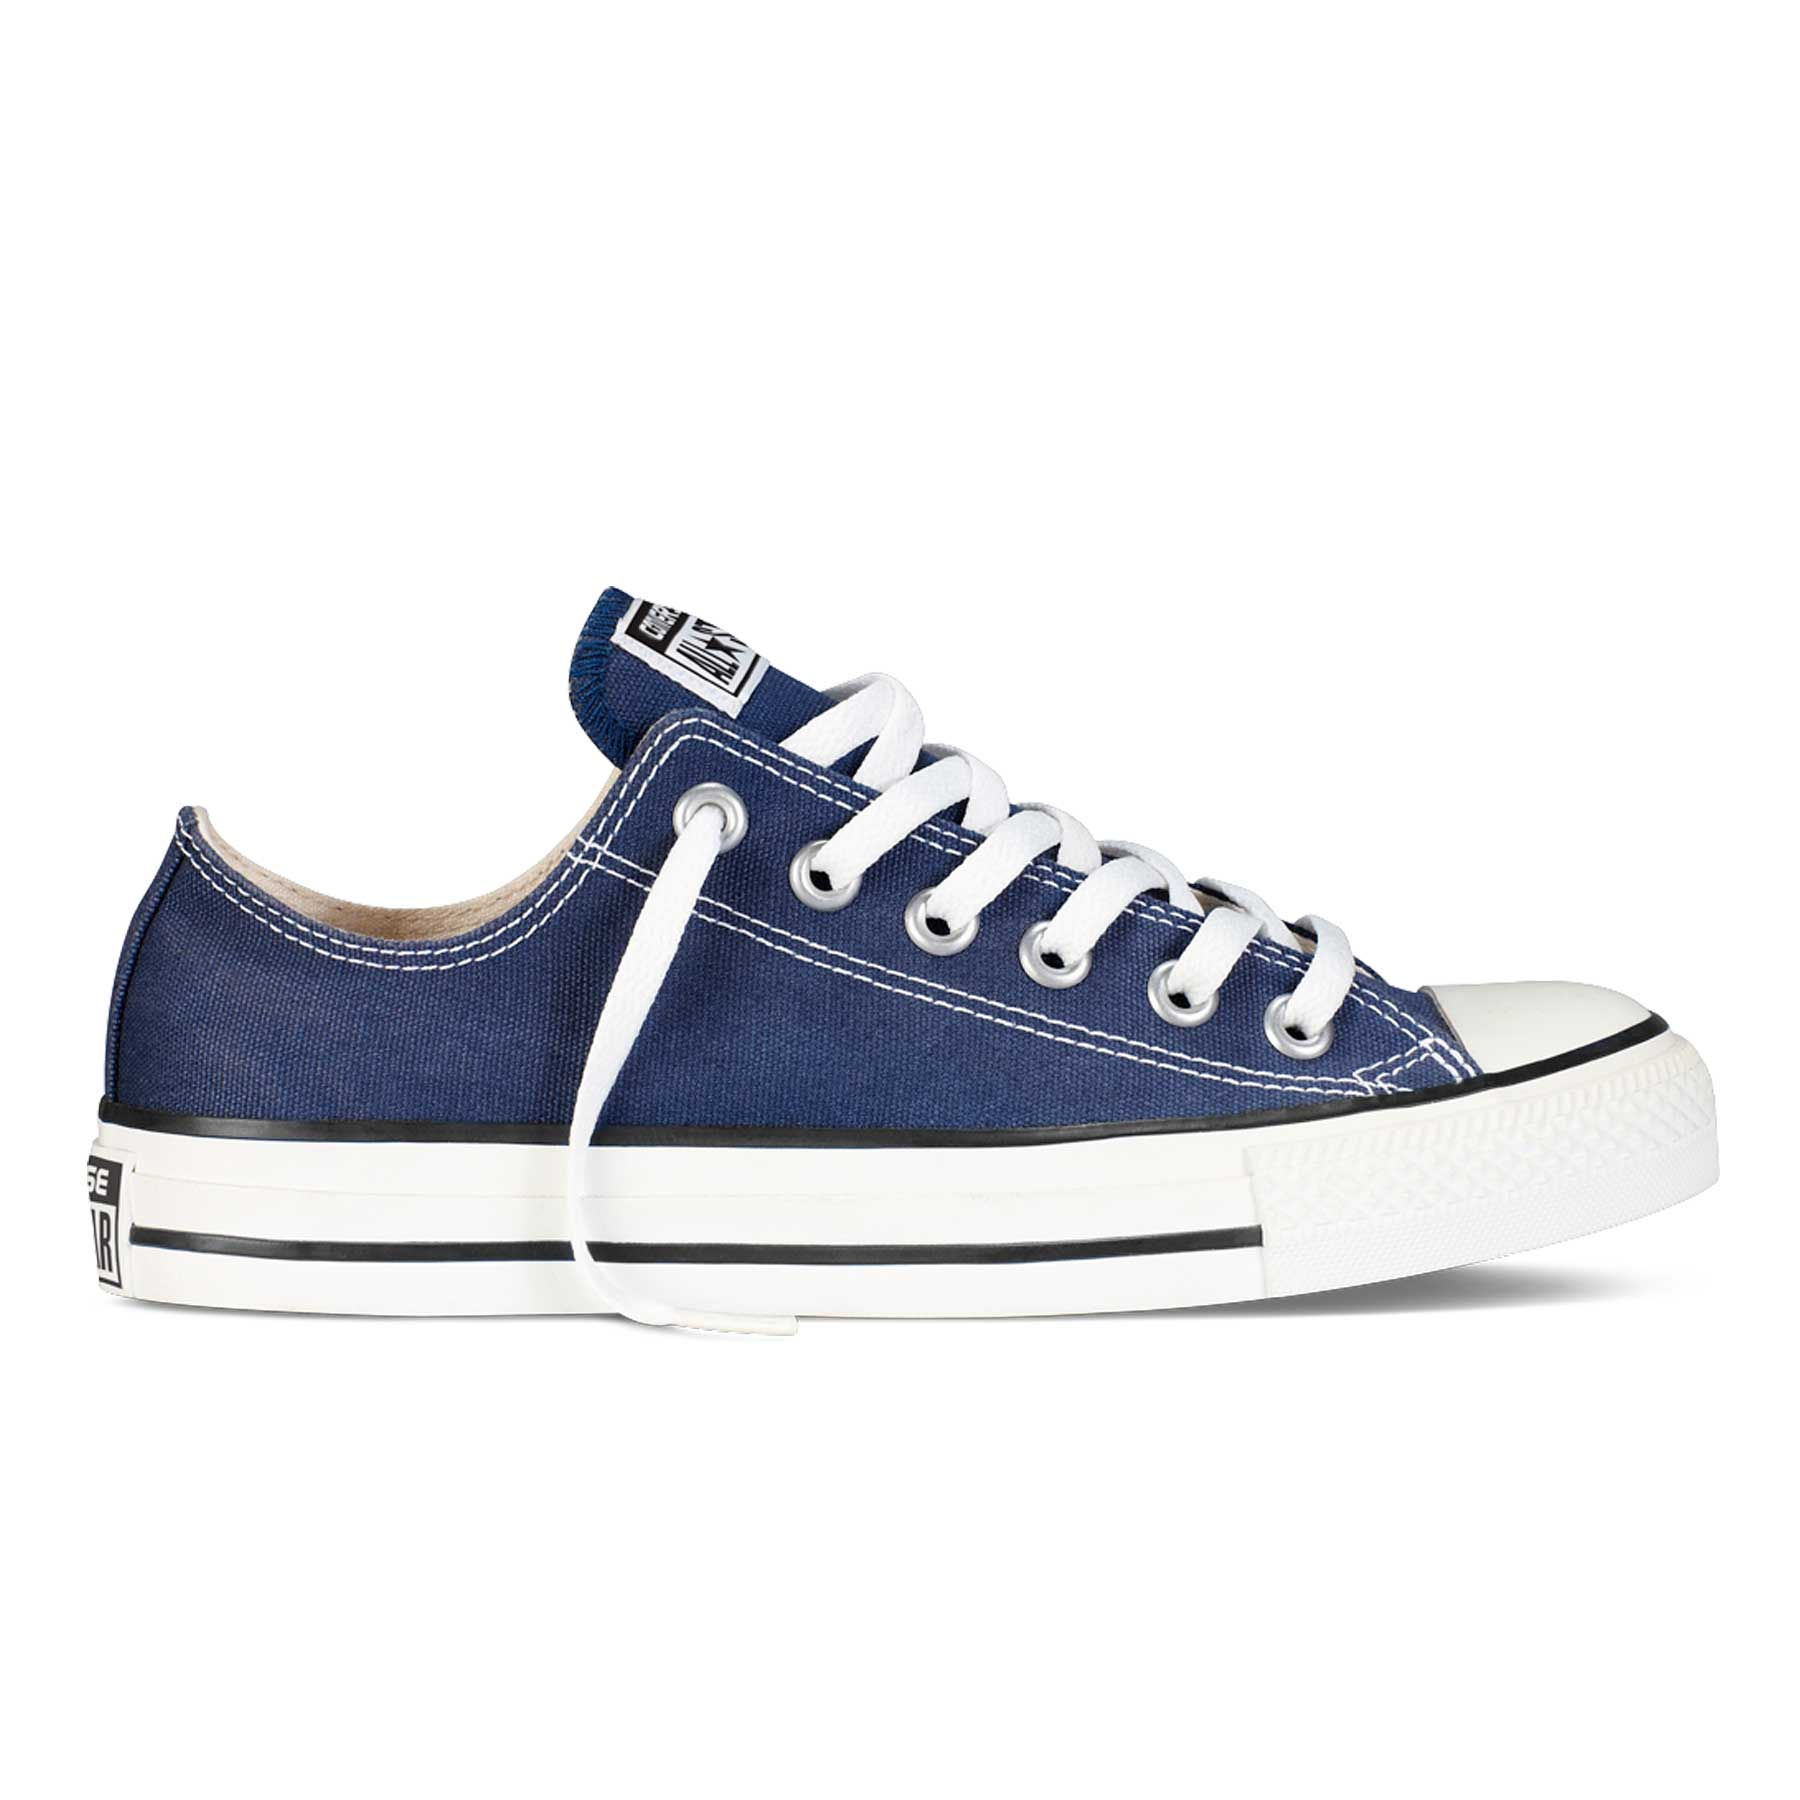 CHUCK TAYLOR ALL STAR OX BLU